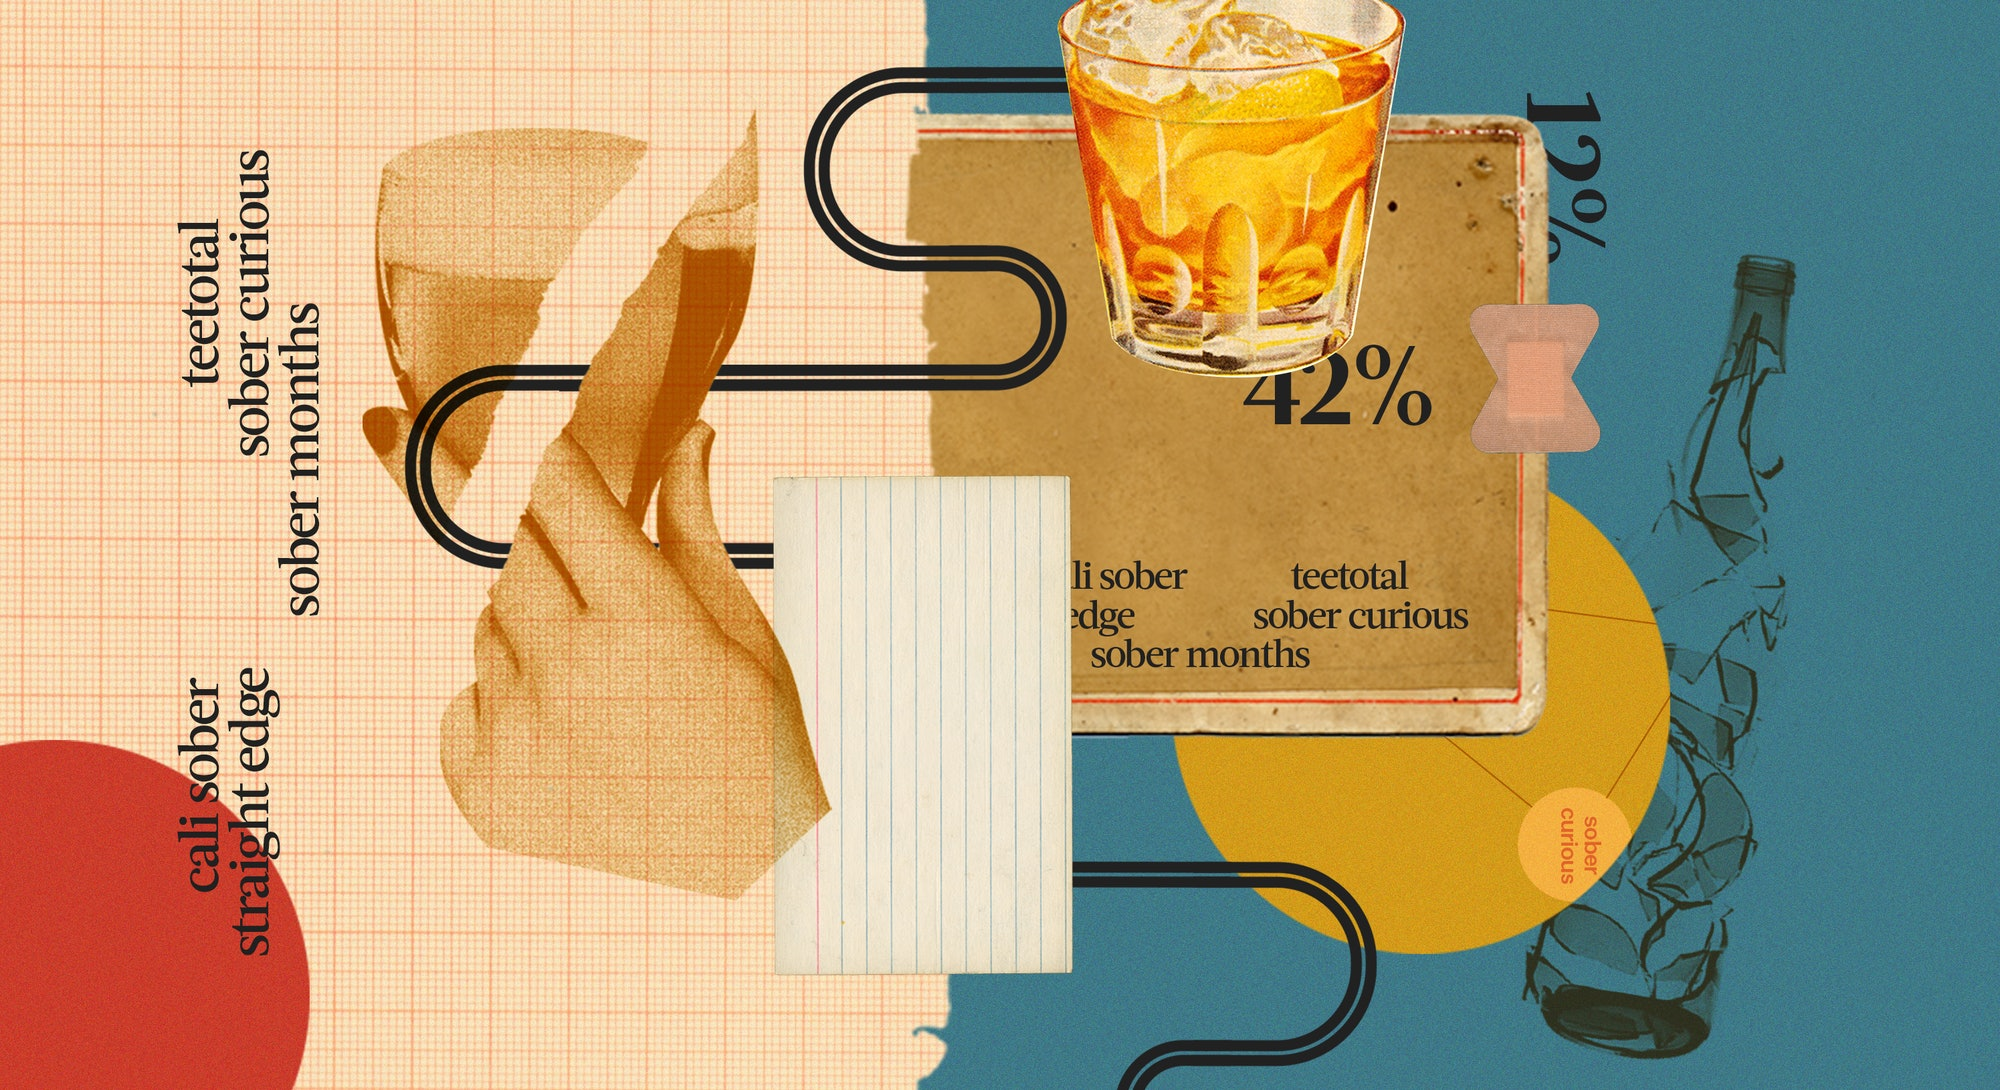 A survey of 2,000 millennial women on drinking found that nearly 40% abstain from alcohol.